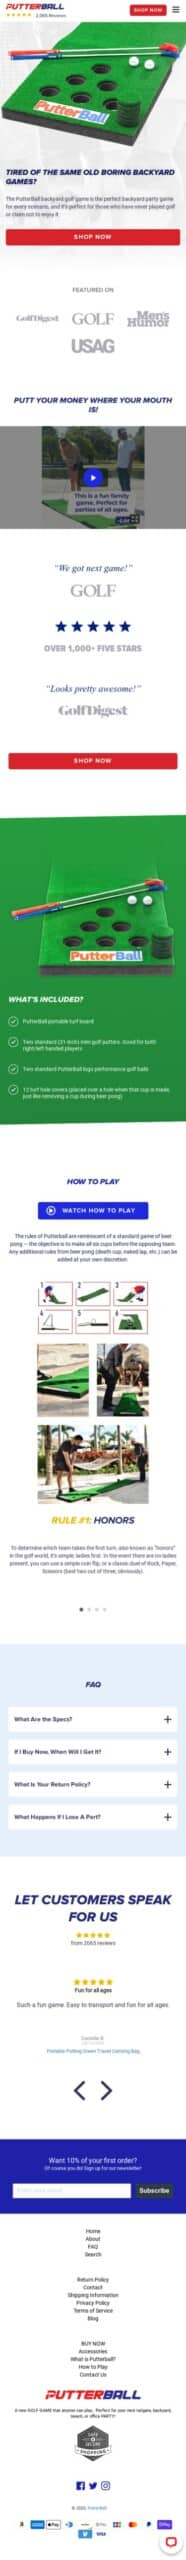 Putterball Game Coupon